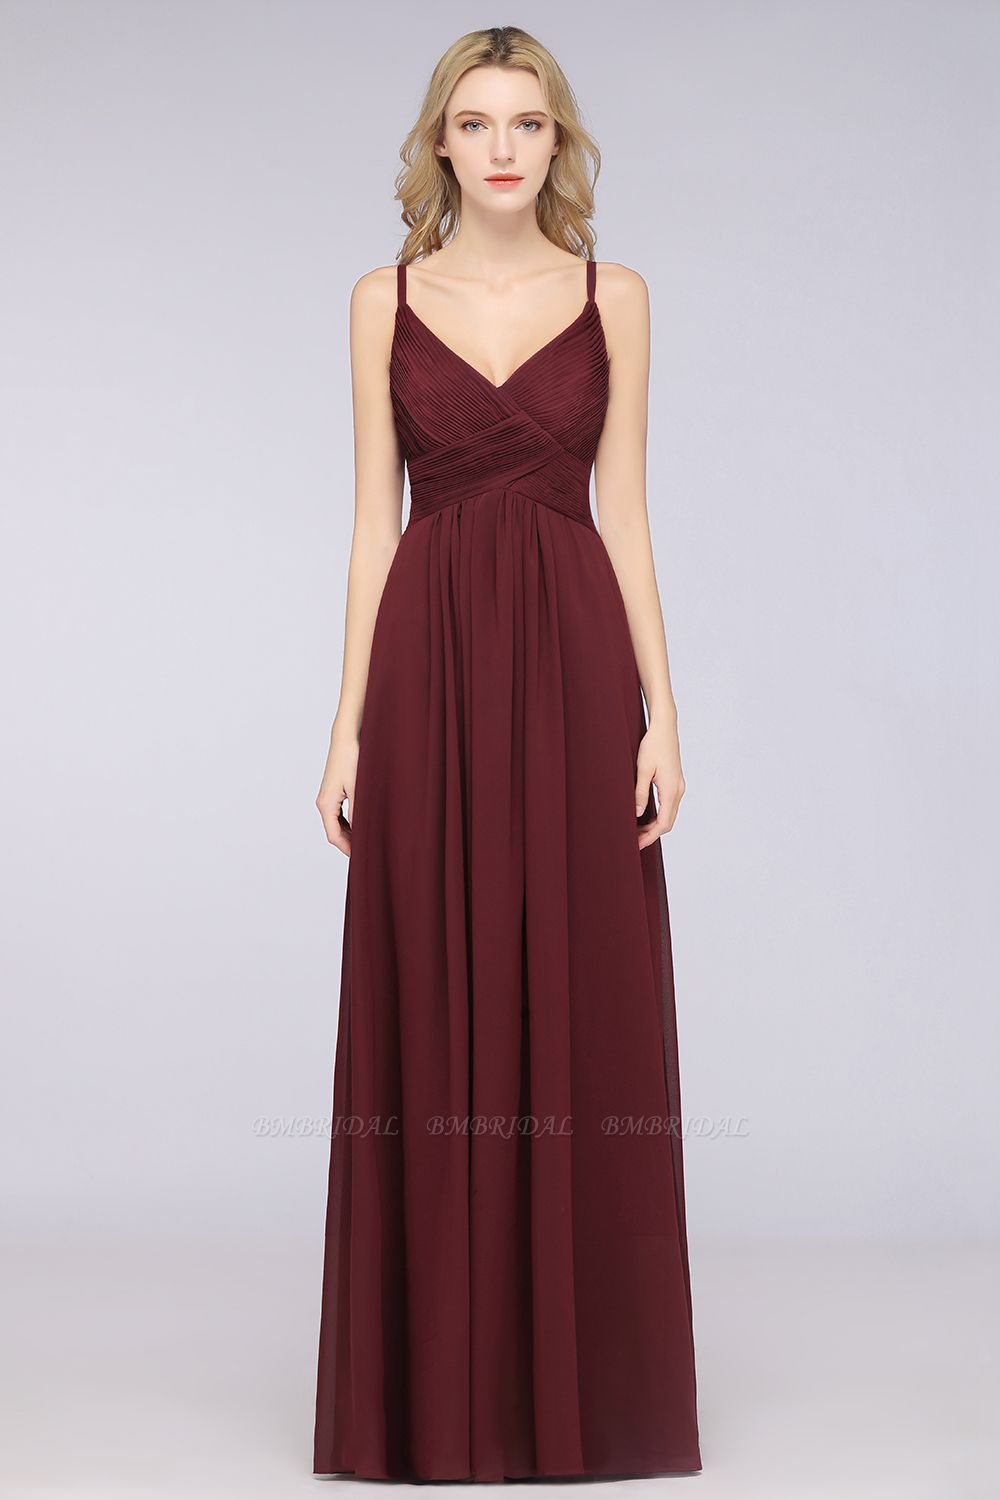 Affordable Chiffon Ruffle V-Neck Bridesmaid Dress with Spaghetti Straps